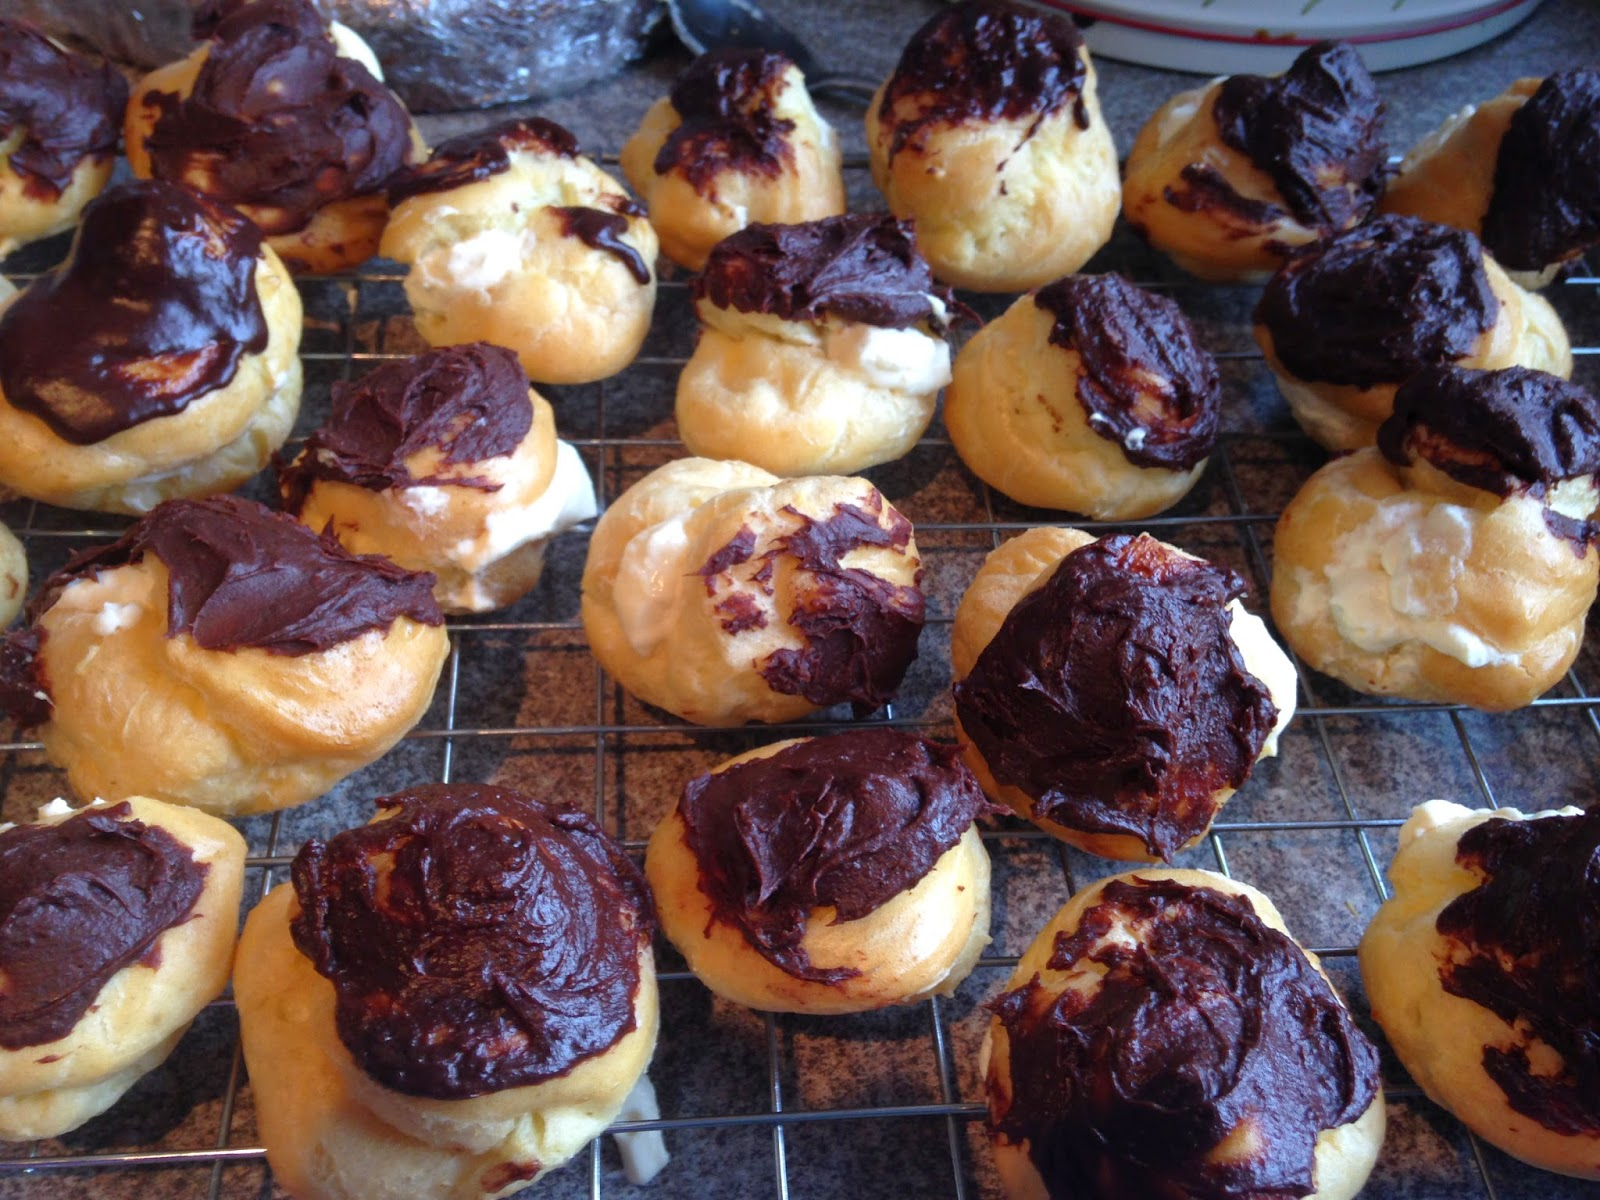 Chocolate orange profiteroles & sibling rivalry